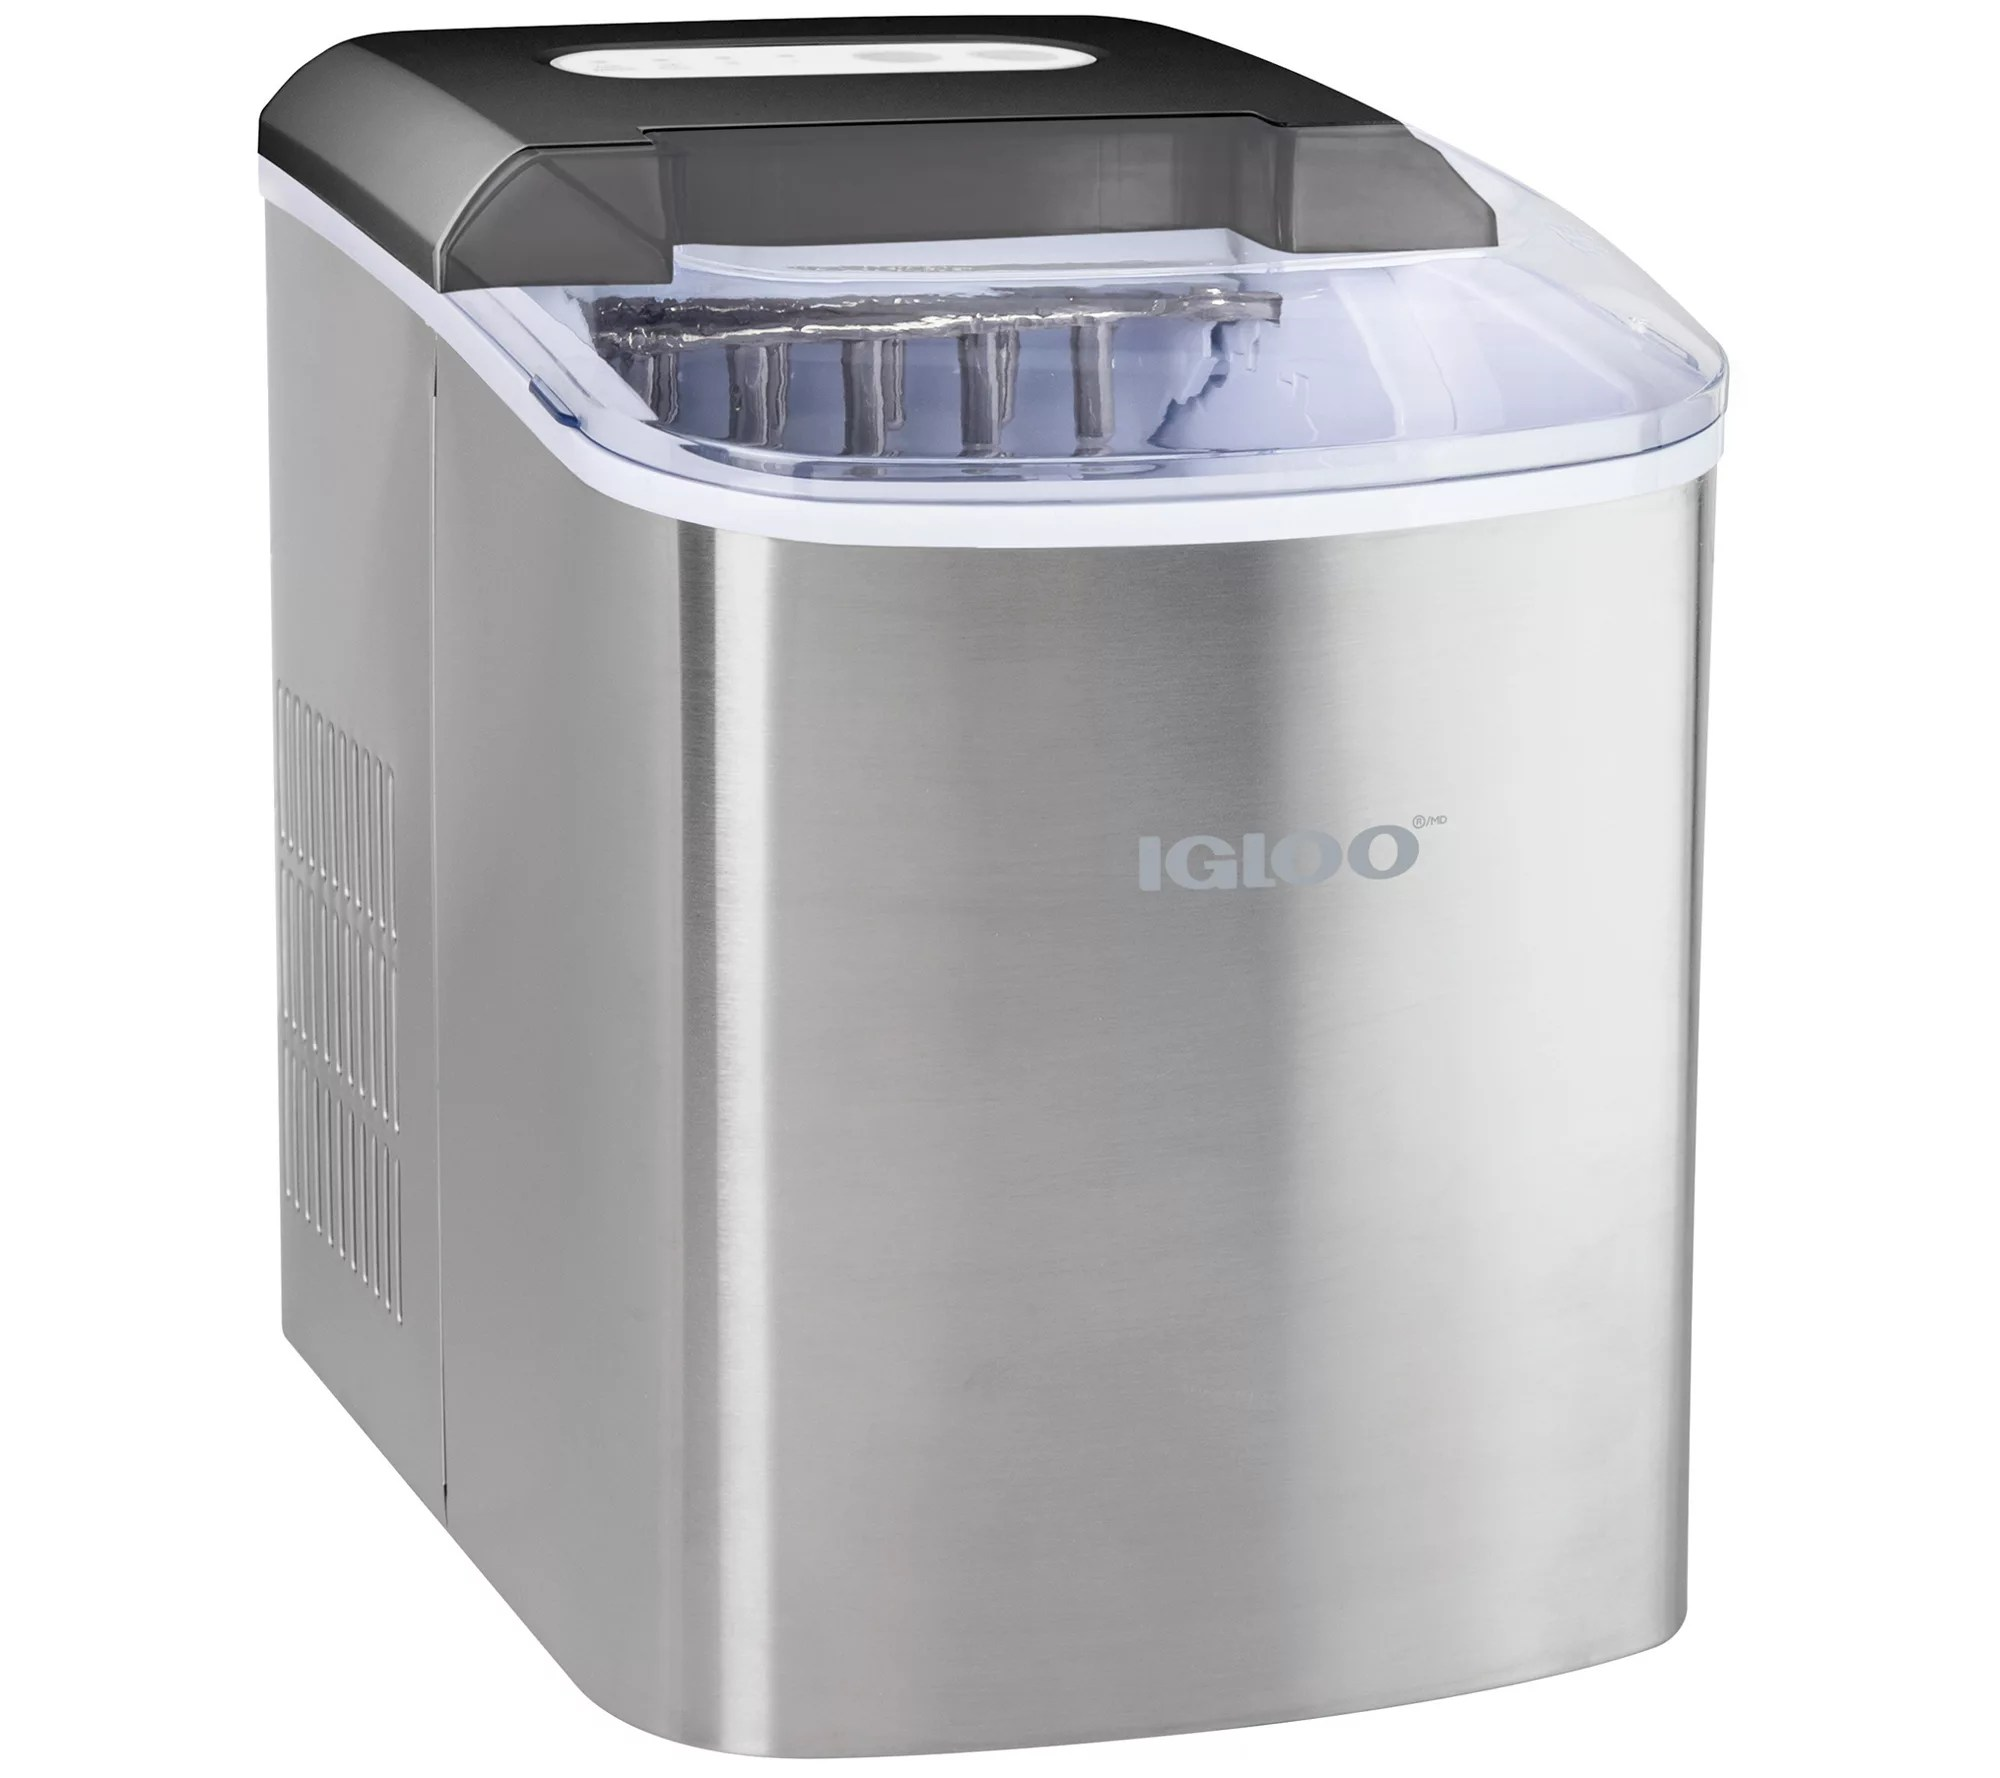 Igloo 26 Lb Automatic Countertop Portable Ice Maker Qvc Com